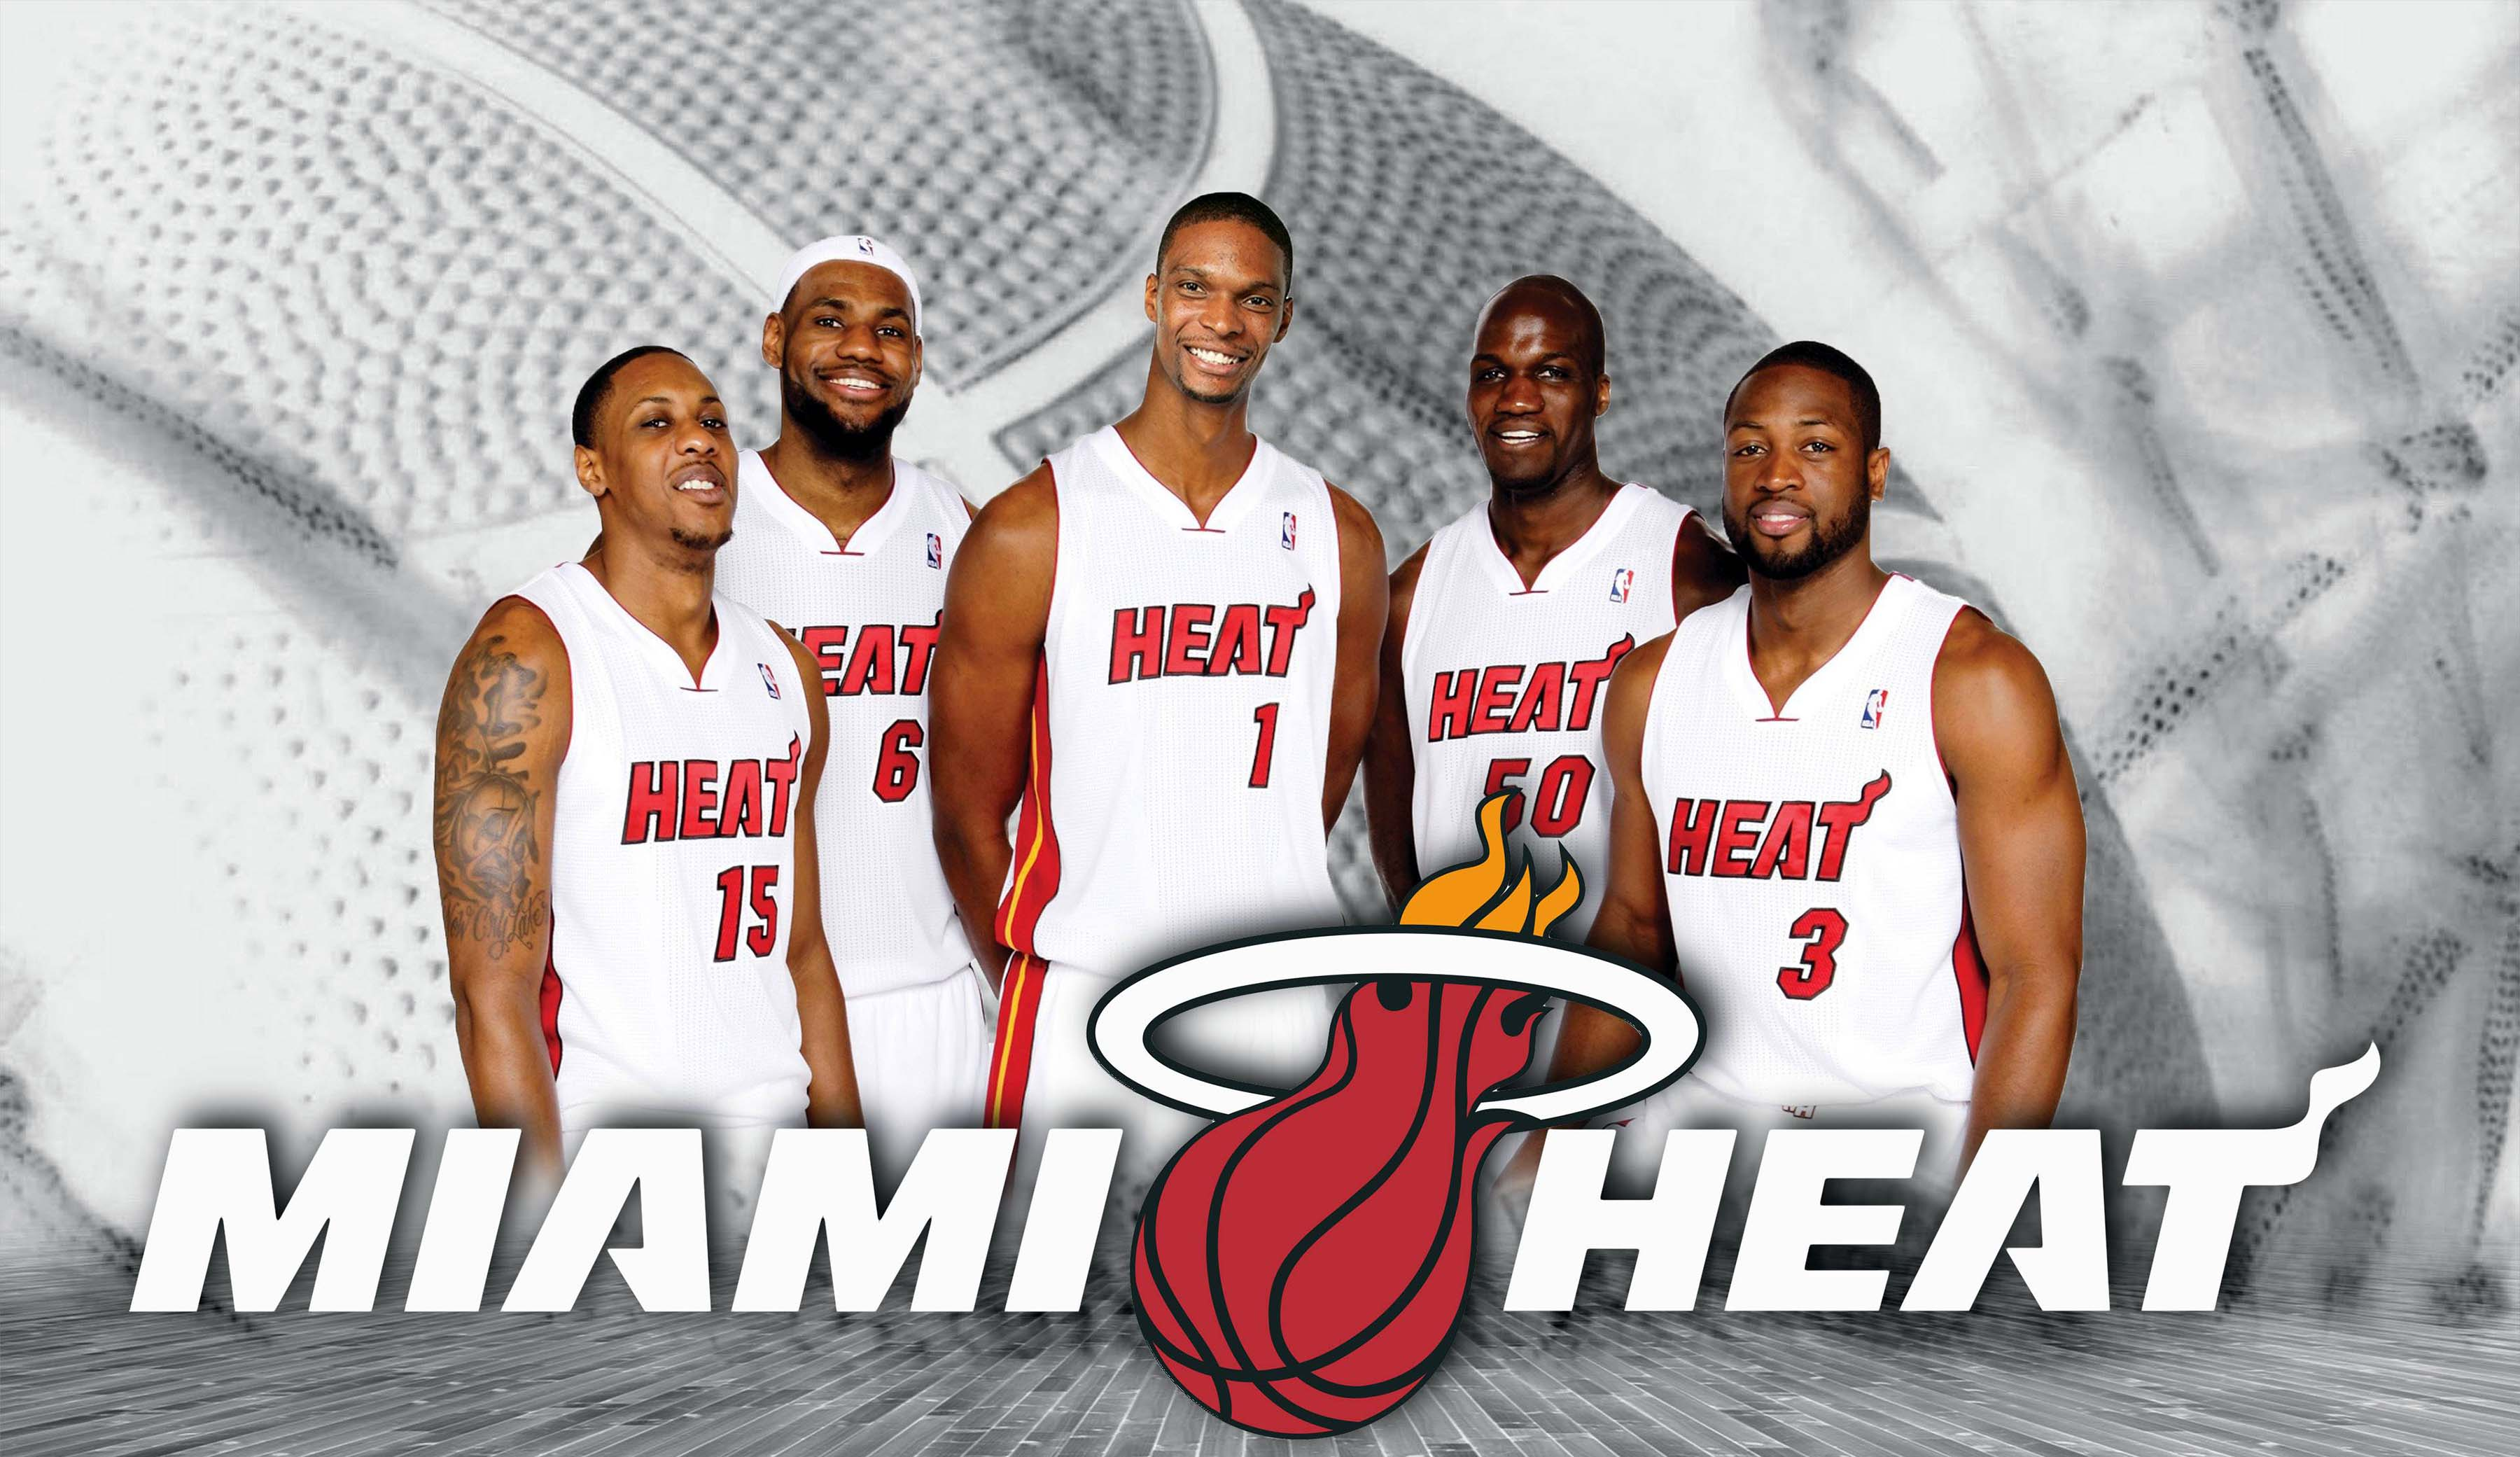 Miami heat wallpapers hd 2017 wallpaper cave miami heat images nba championship games wallpapers voltagebd Image collections